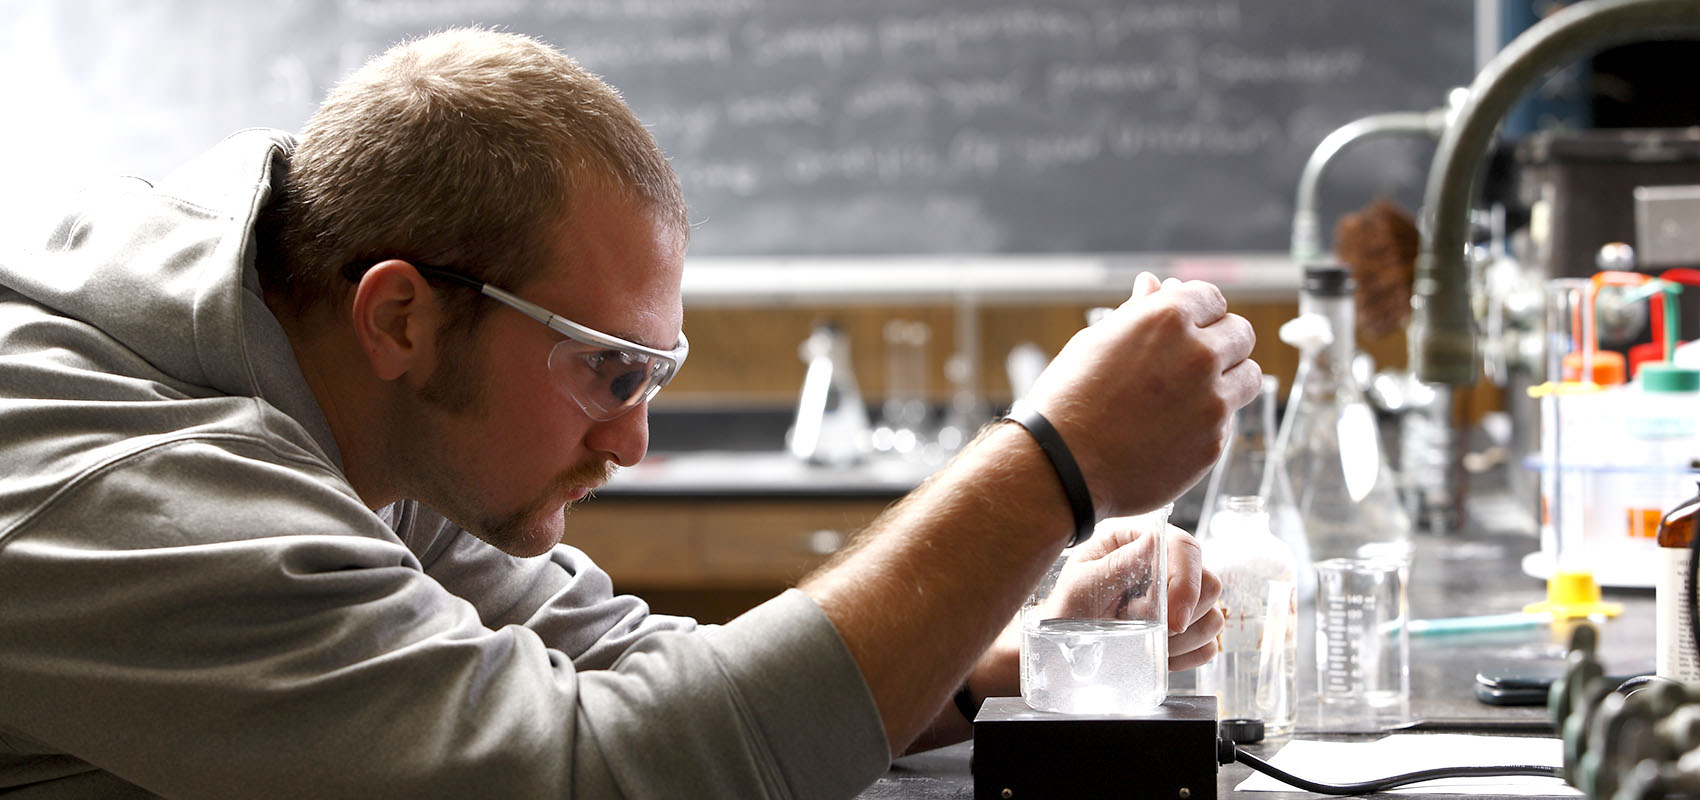 USF student conducting an experiment in the science lab.